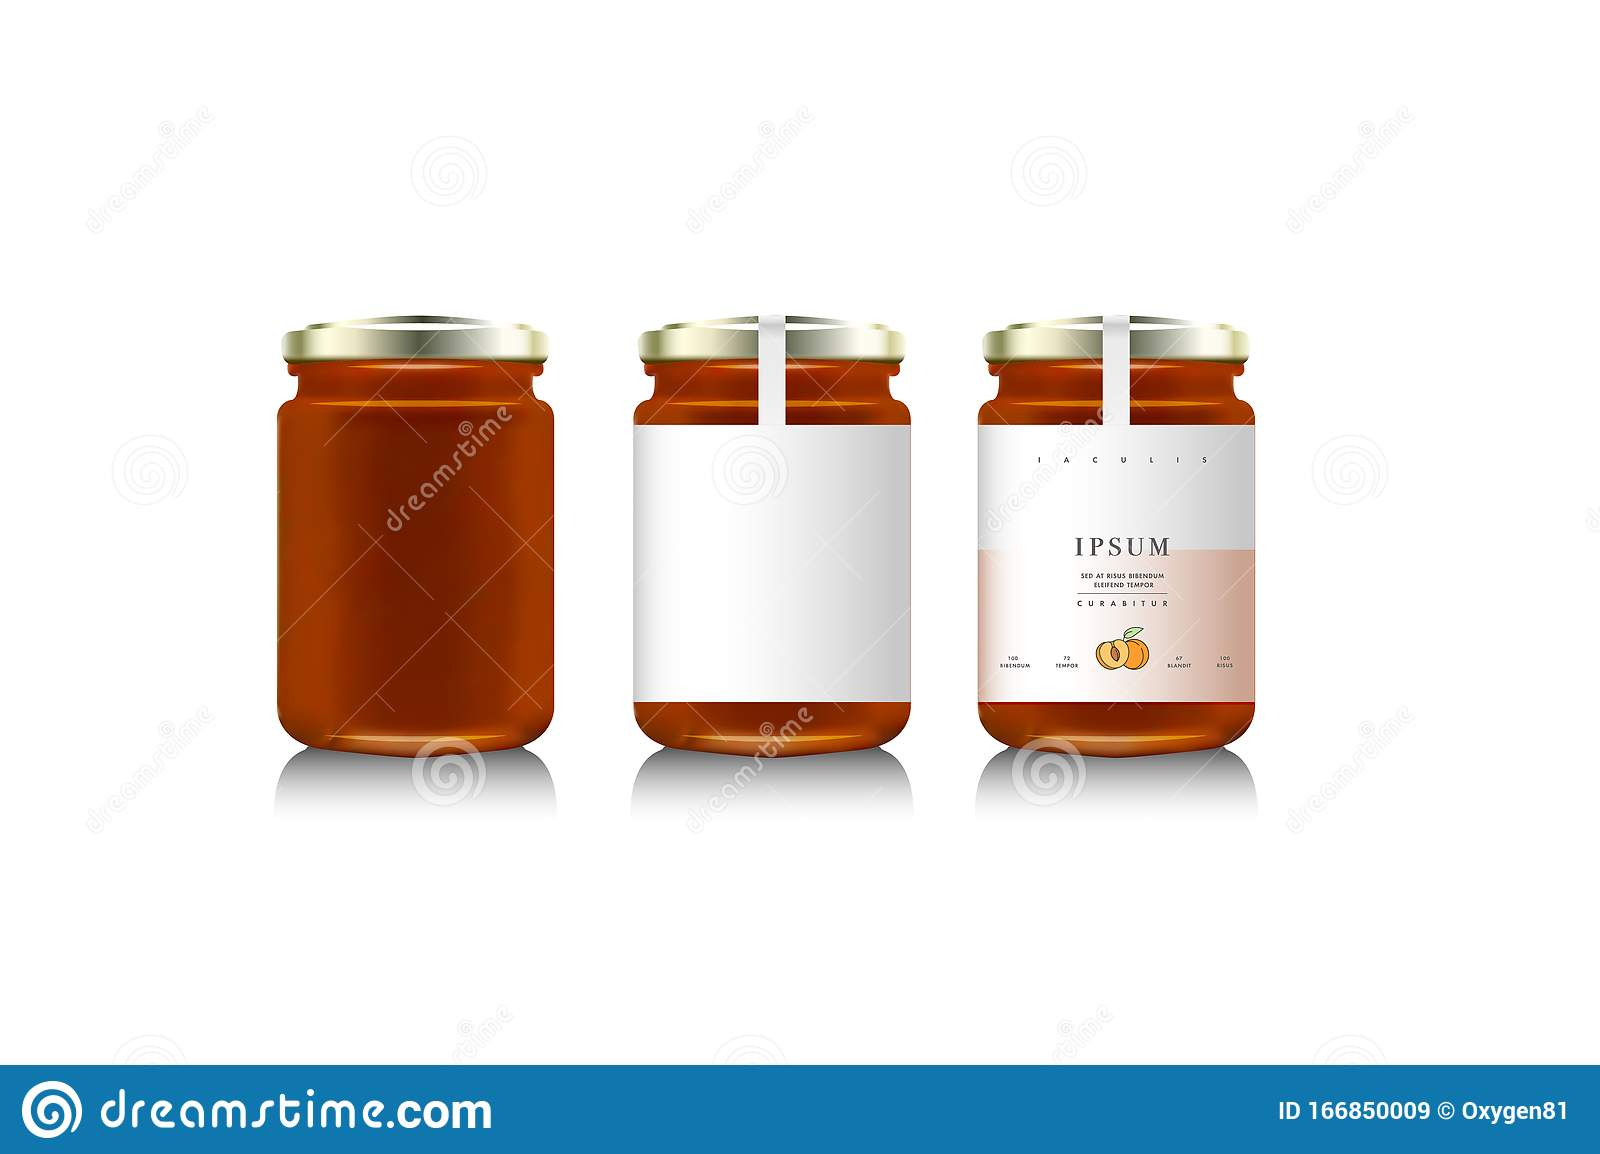 Realistic Glass Bottle Packaging For Fruit Jam Design Apricot Jam With Design Label Typography Line Drawing Apricots I Mock Up Stock Illustration Illustration Of Label Apricots 166850009